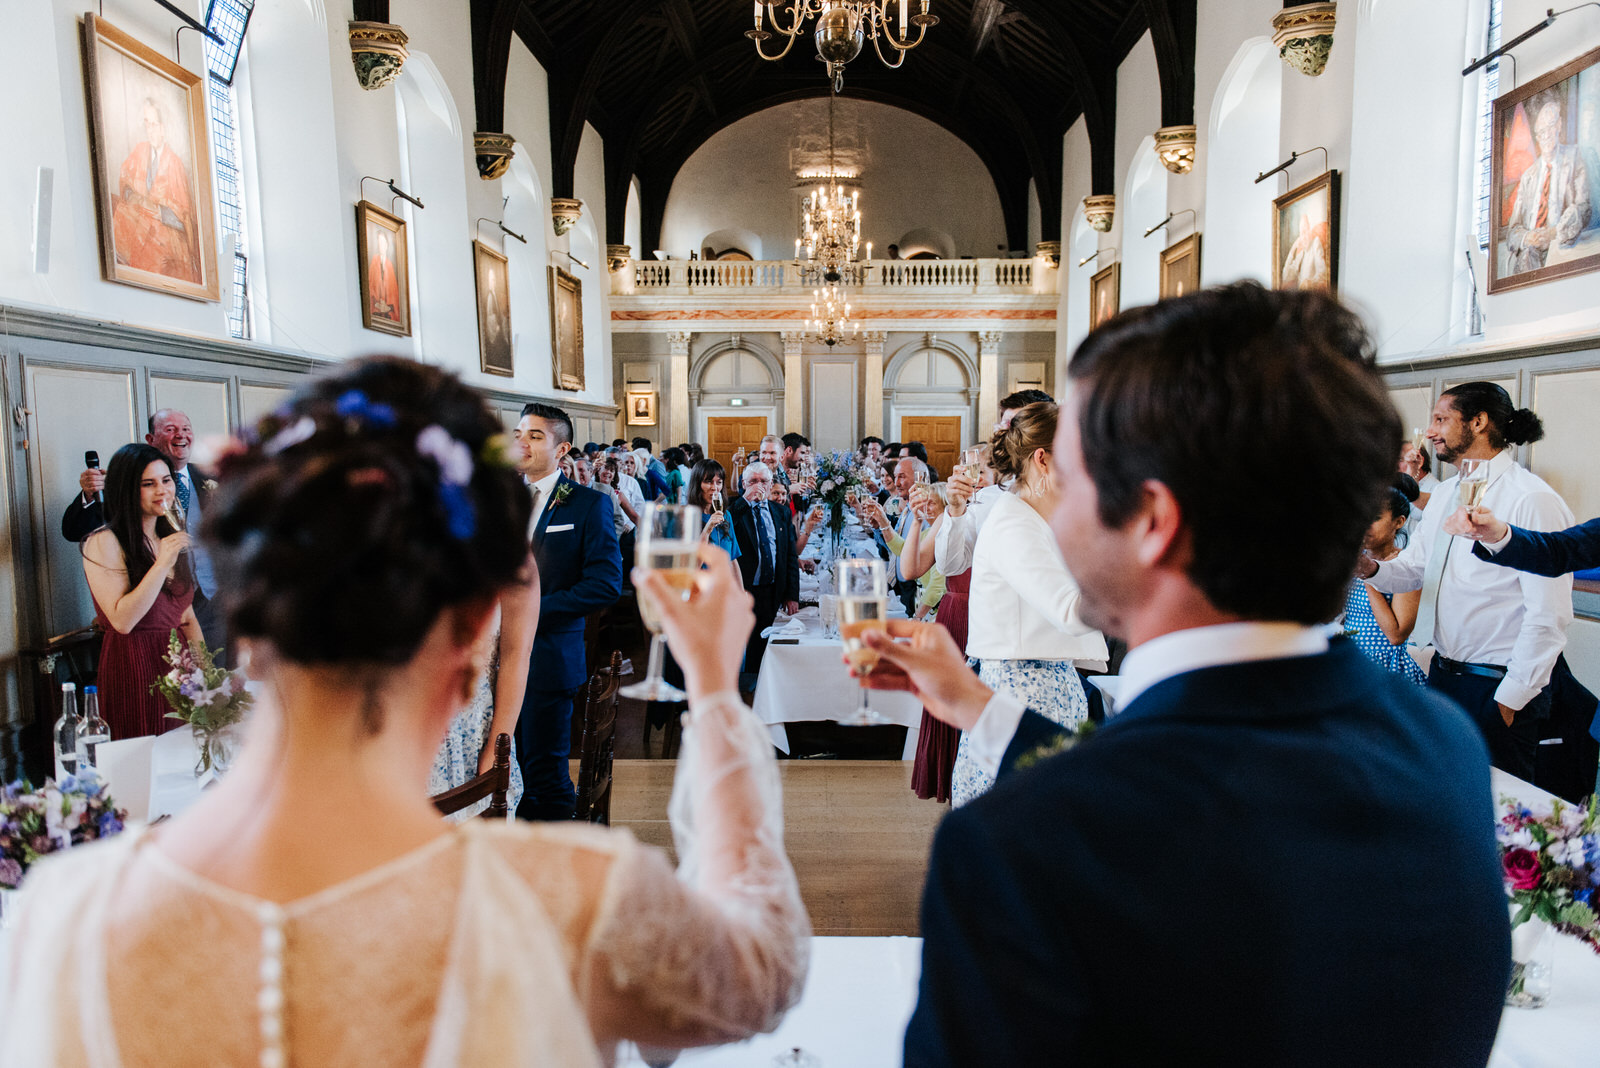 Guests raise a toast to the new bride and groom after father of